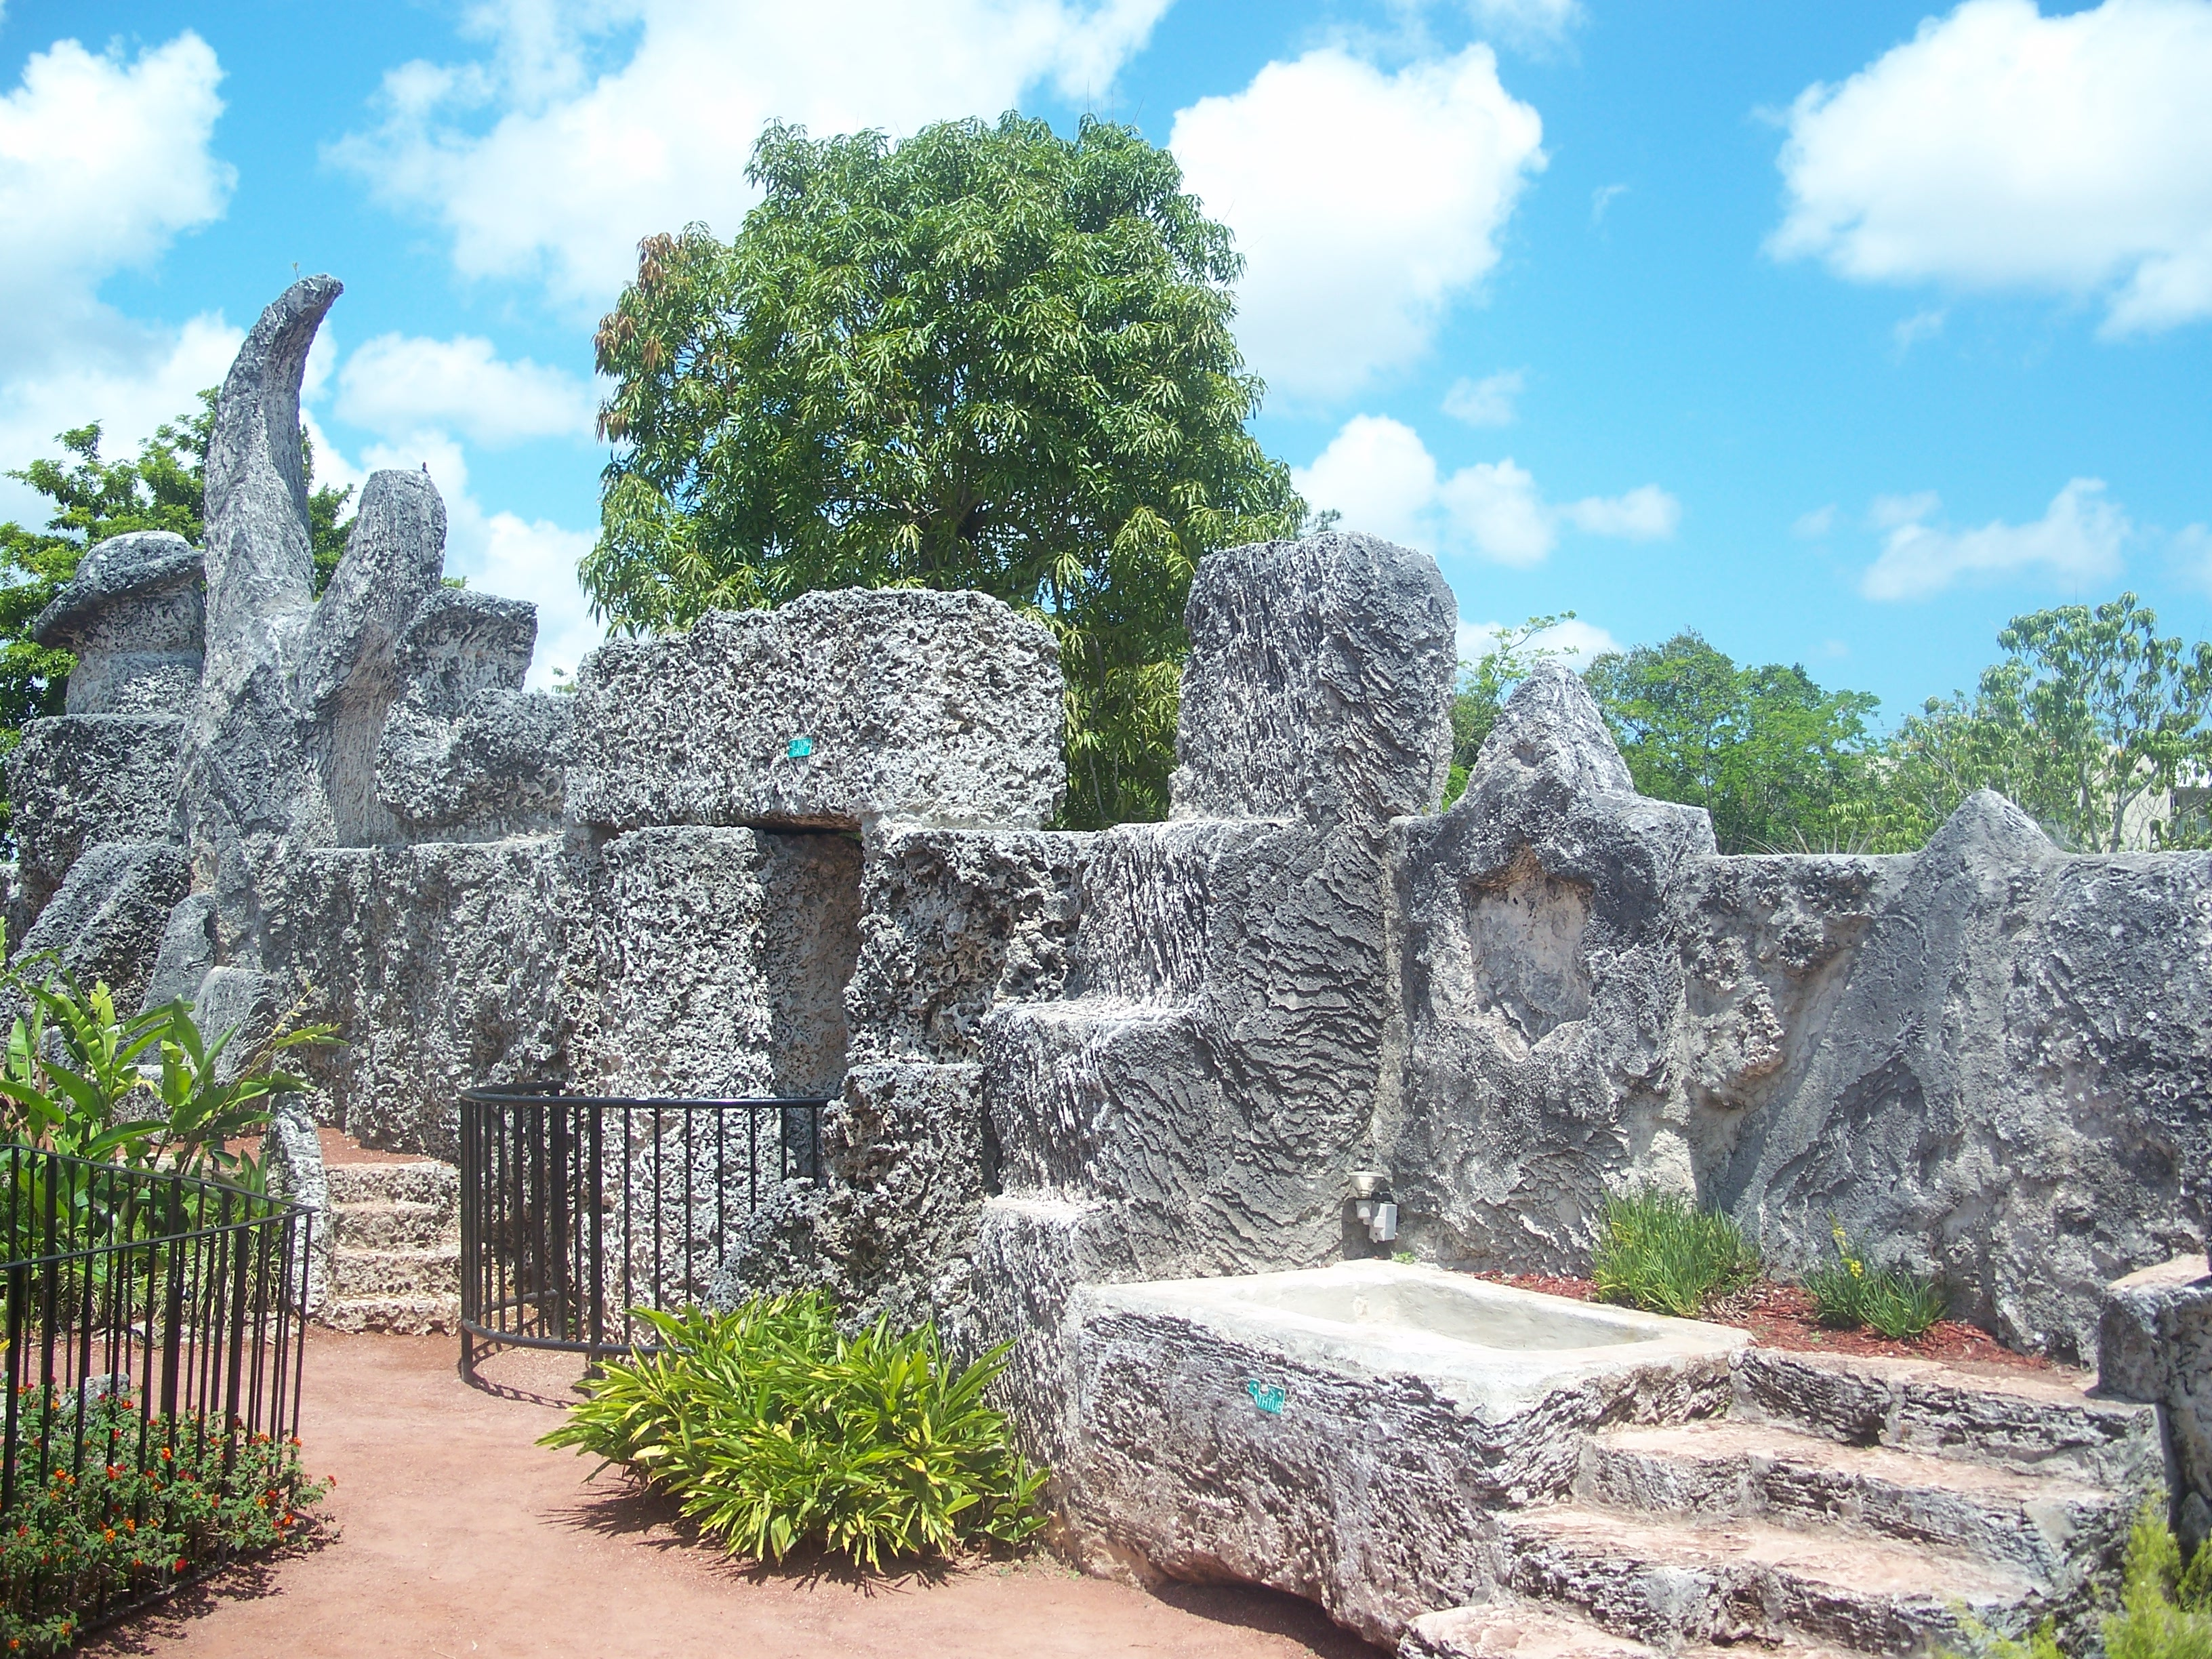 coral castle pictures / promo codes for dress barn